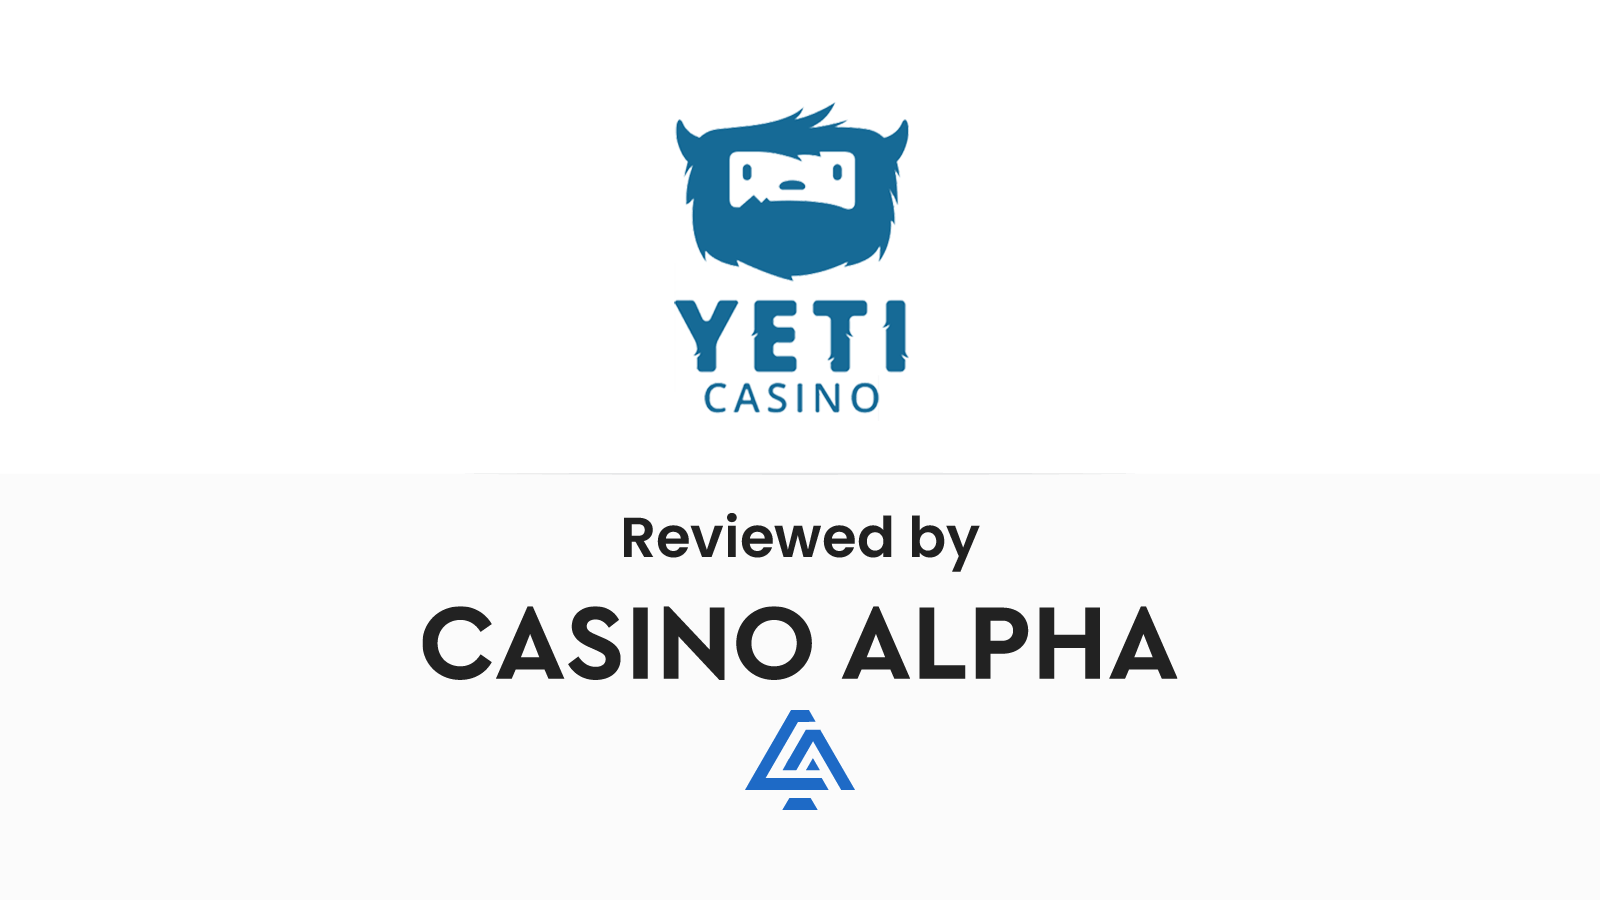 Yeti Casino Review & Promotions List